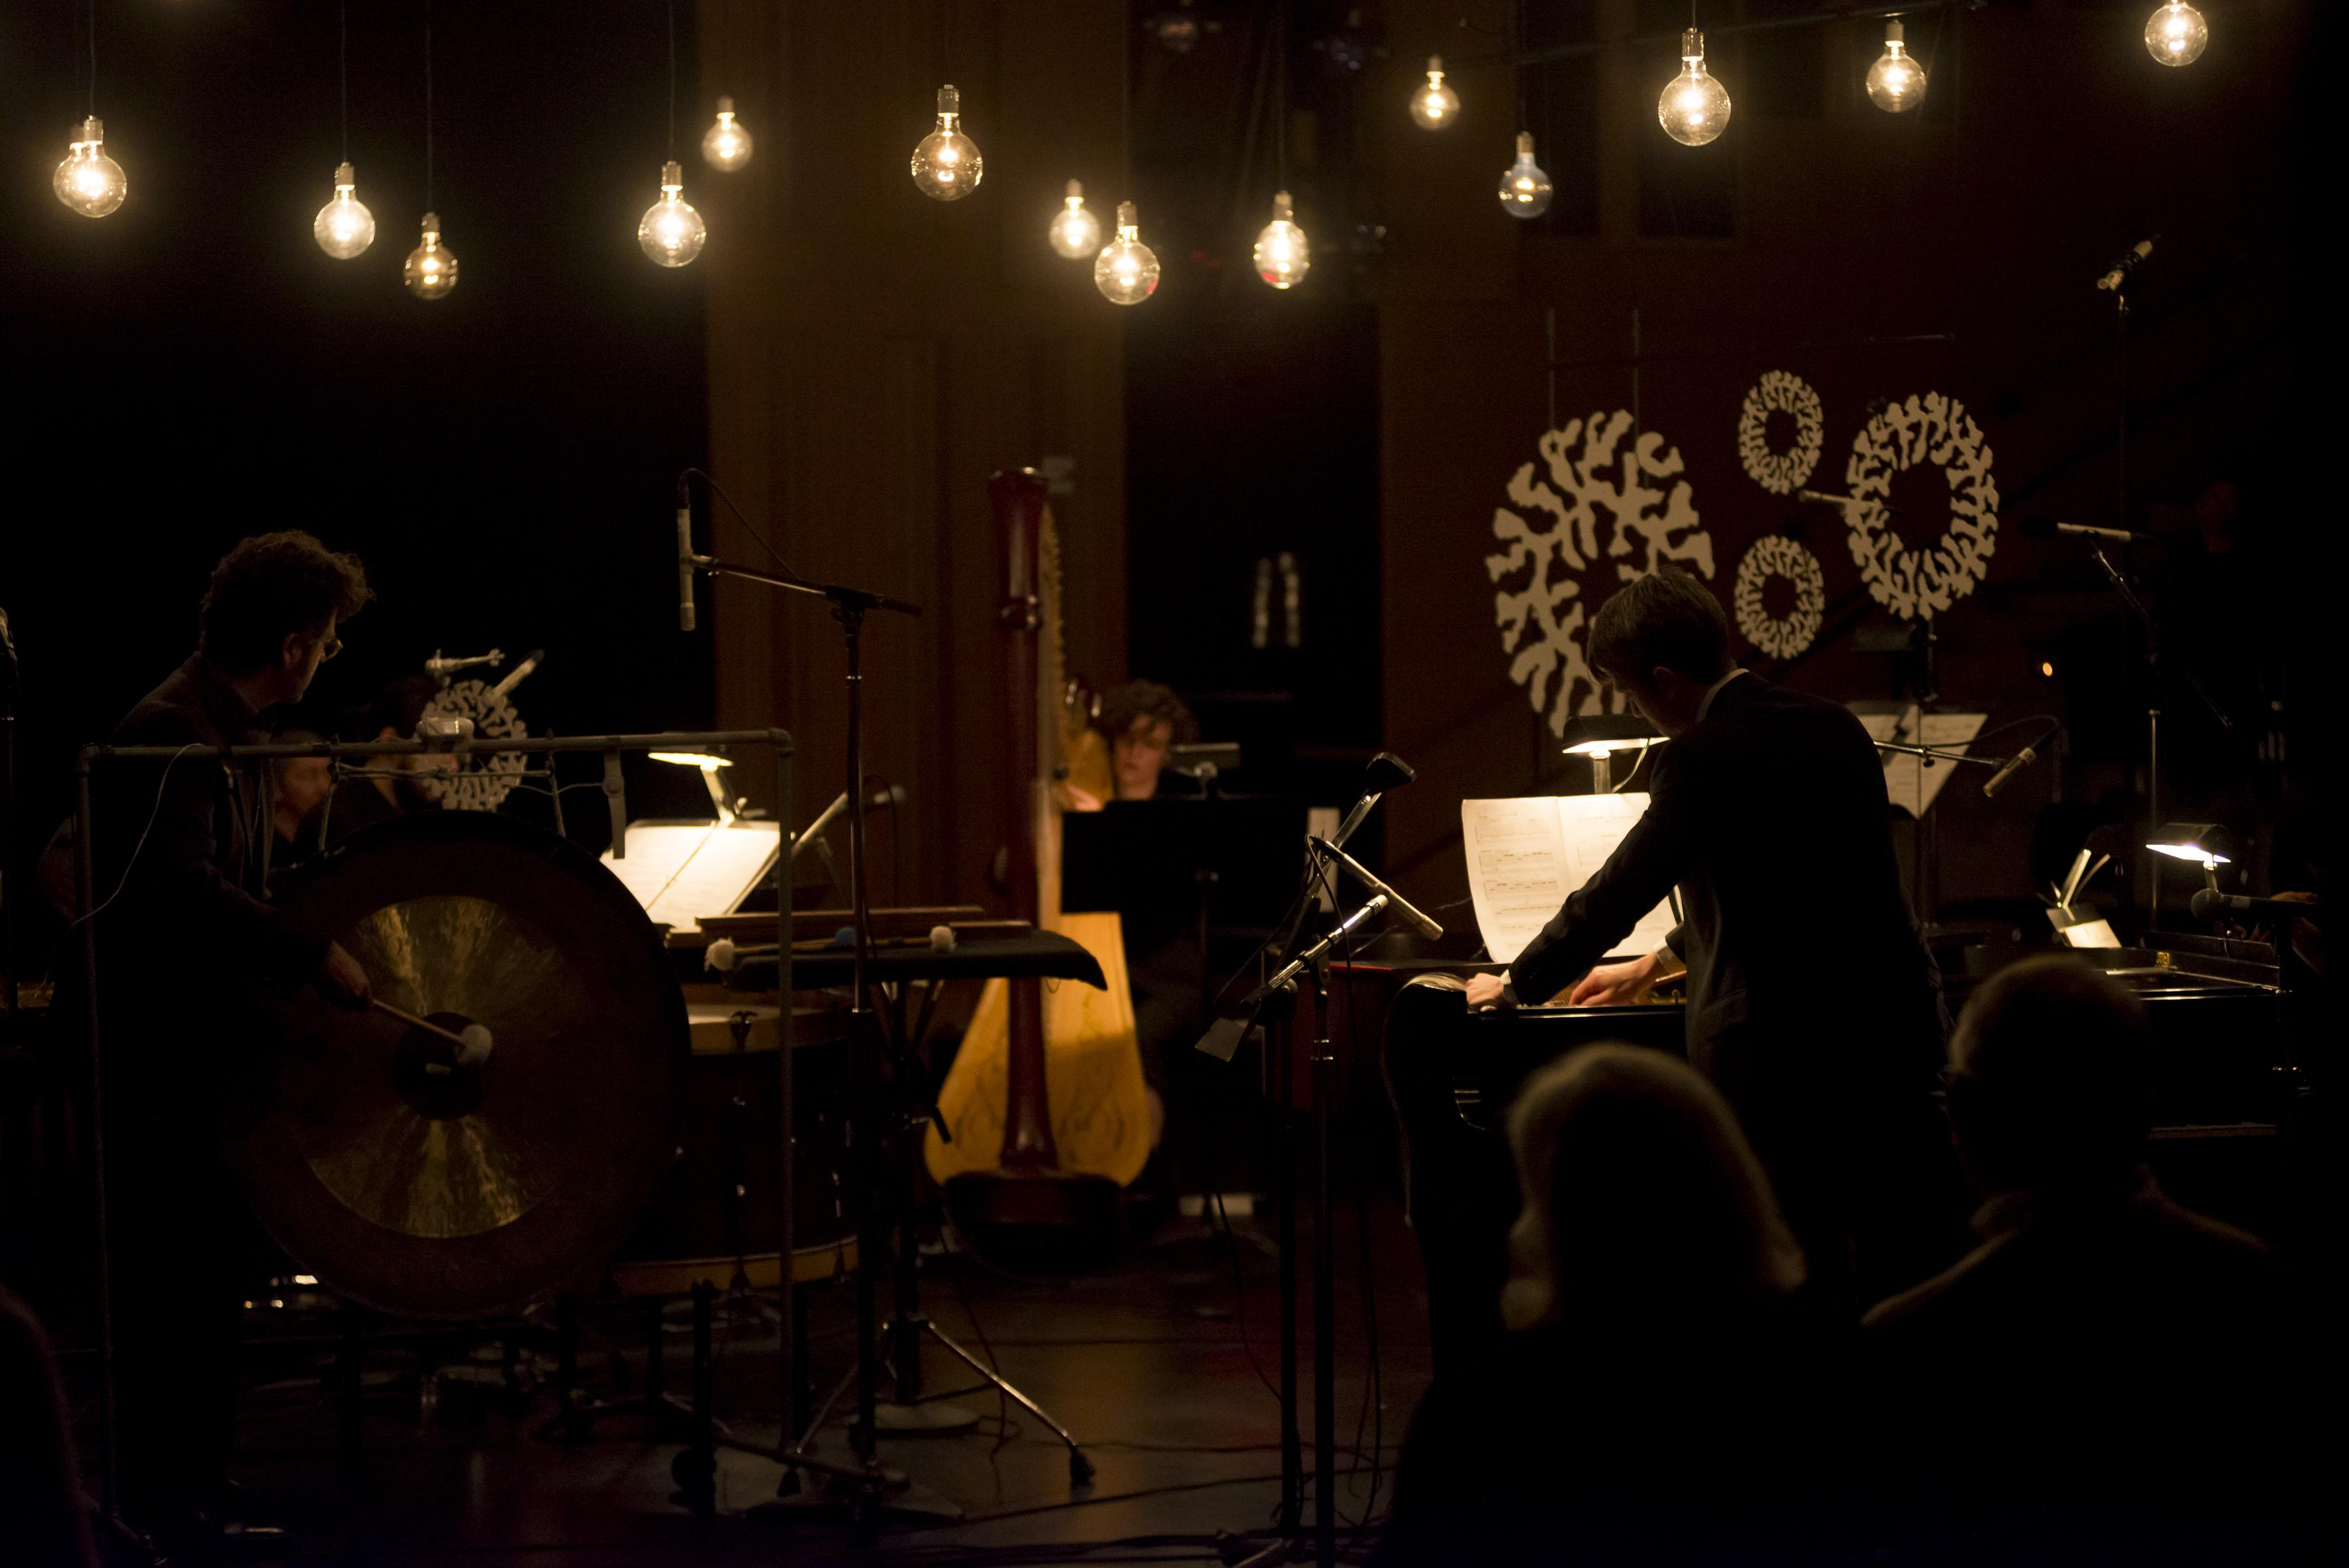 A dark room is lit by a suspended string of light bulbs hanging above performing musicians.